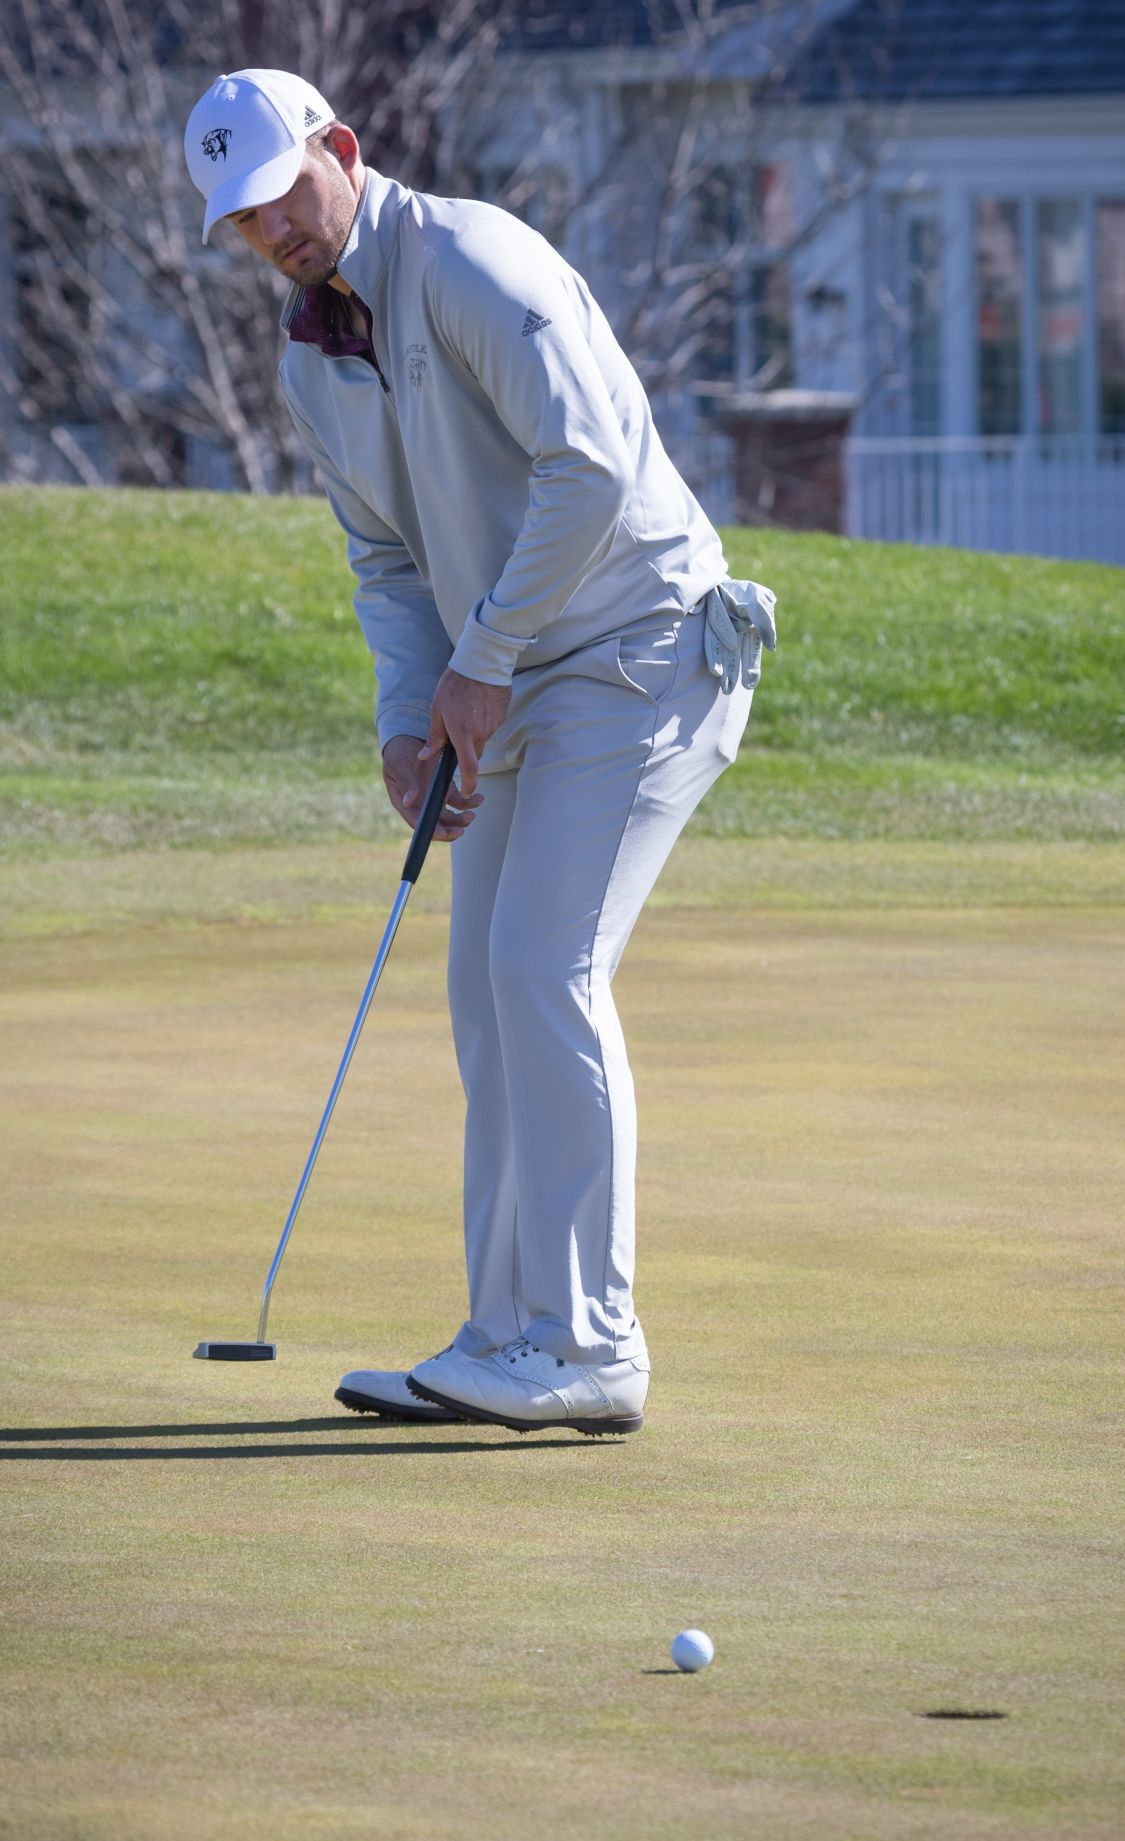 Two-time state golf champ Luke Kluver leads Norfolk to a win at Creighton Prep invitational (inside)